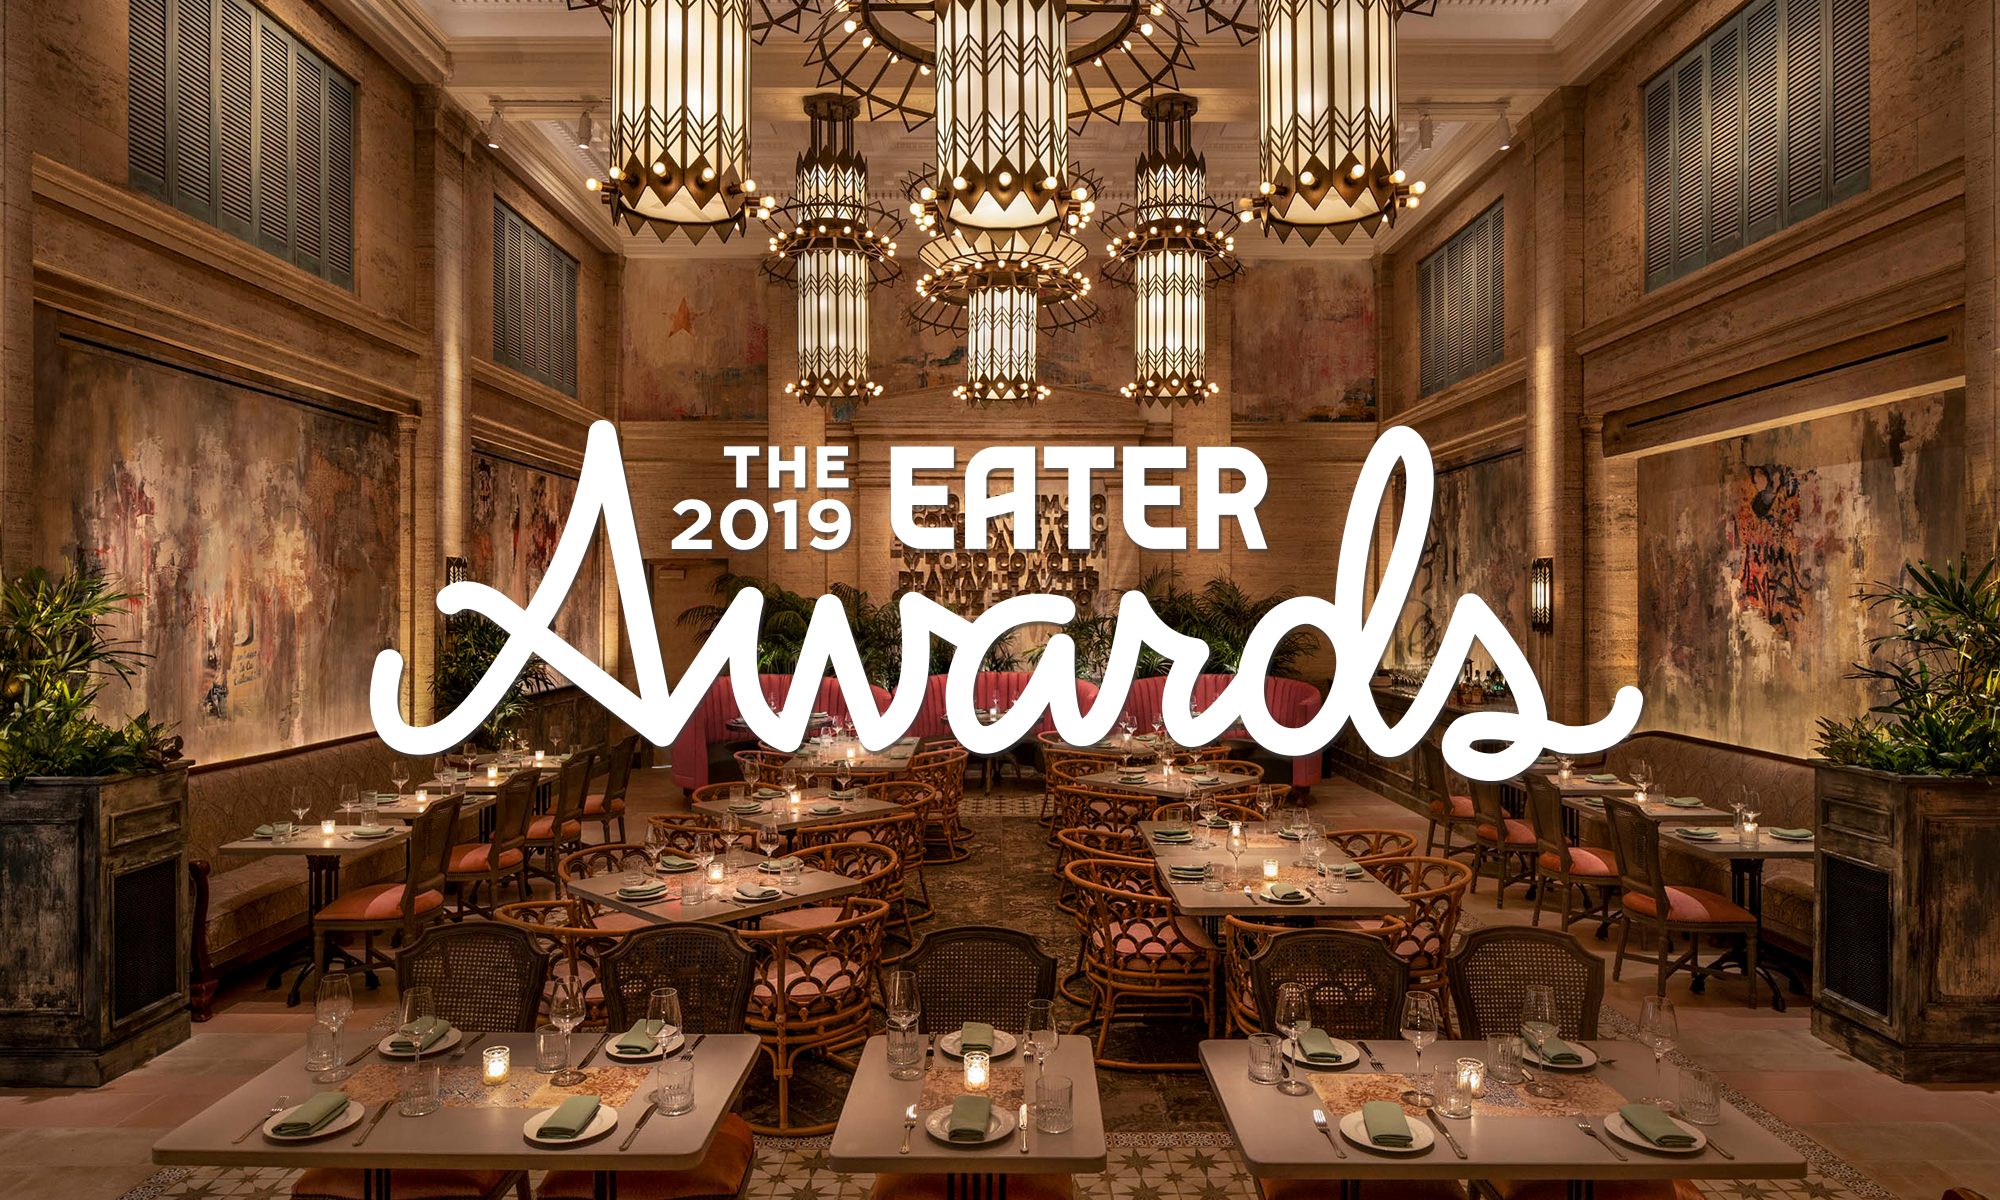 """A high-ceilinged restaurant with grand chandeliers, red plush seating, and wood accents. The words """"the 2019 Eater Awards"""" are superimposed on the image."""